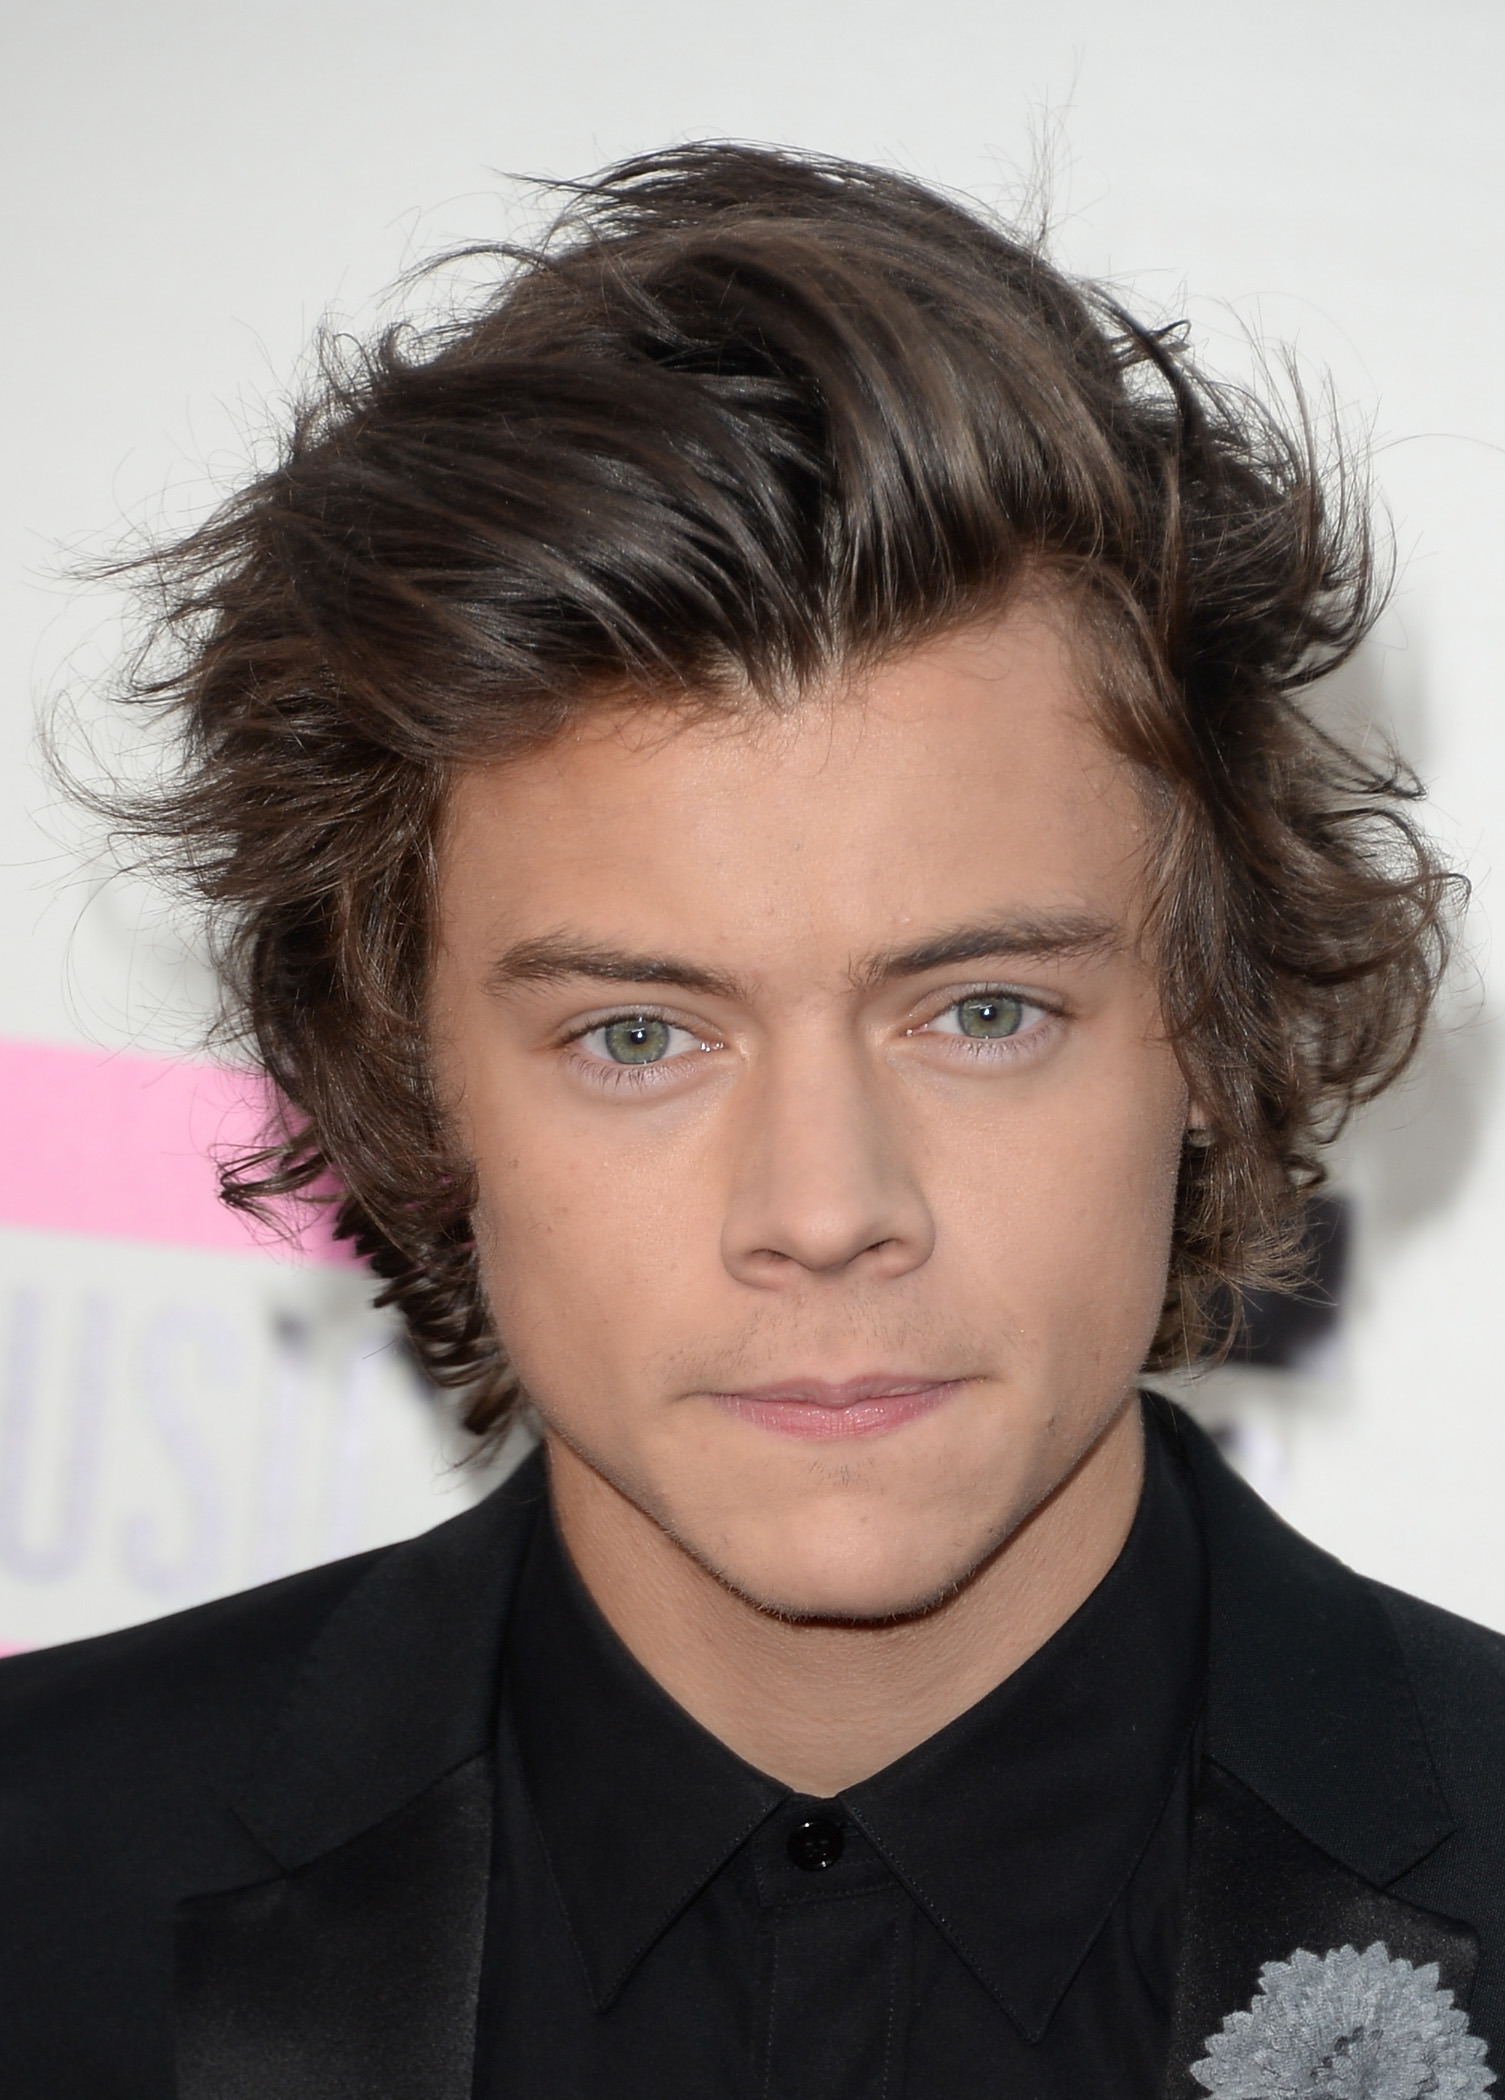 Amazing Harry Styles39 Extended L A Visit Is Harry Moving To The U S Short Hairstyles Gunalazisus